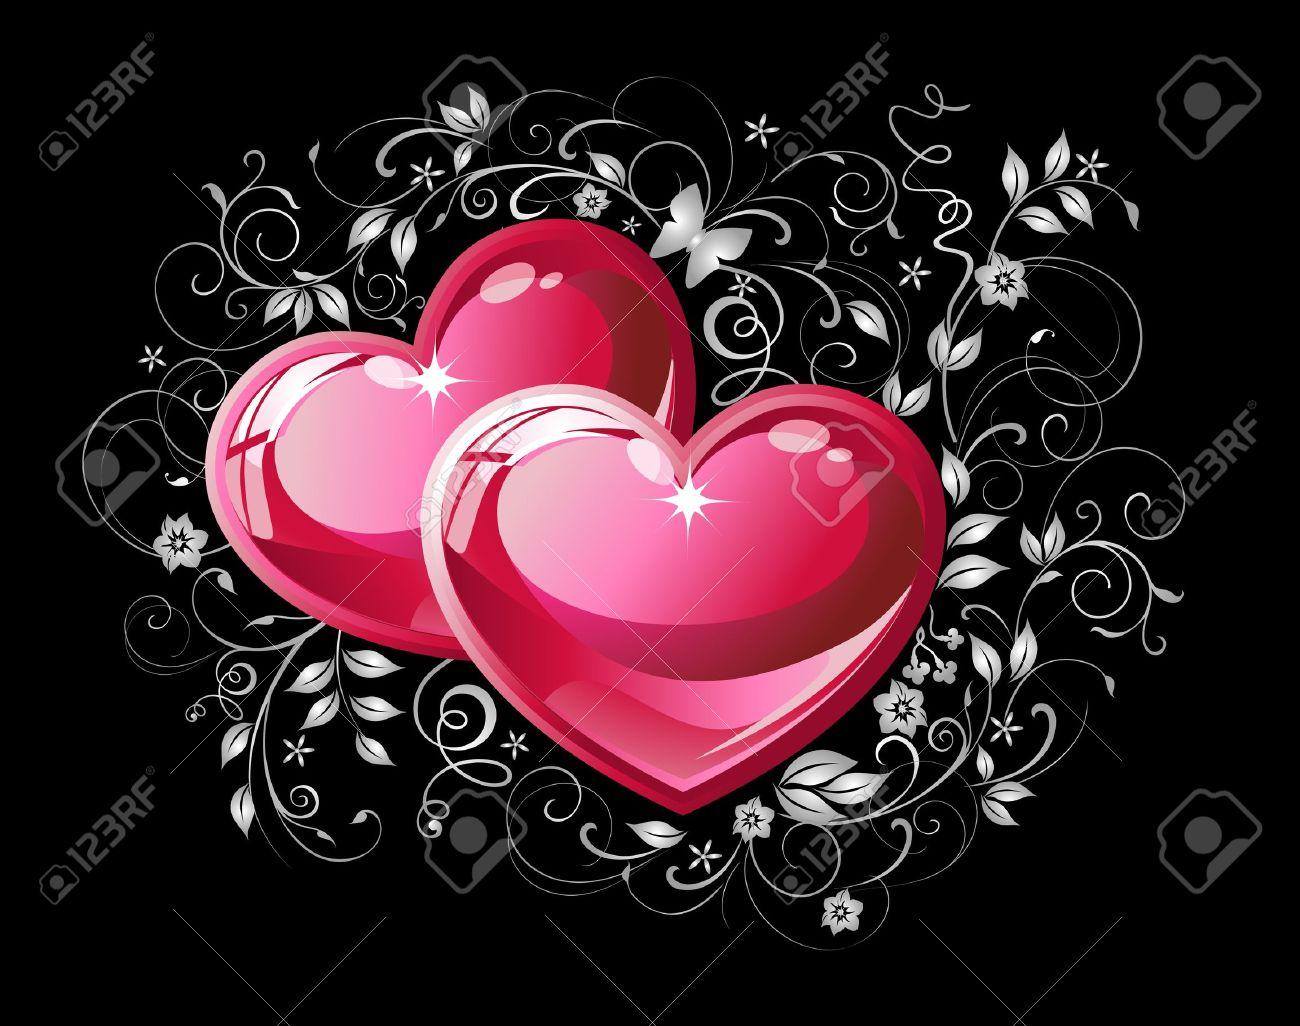 couple red hearts on black background royalty free cliparts